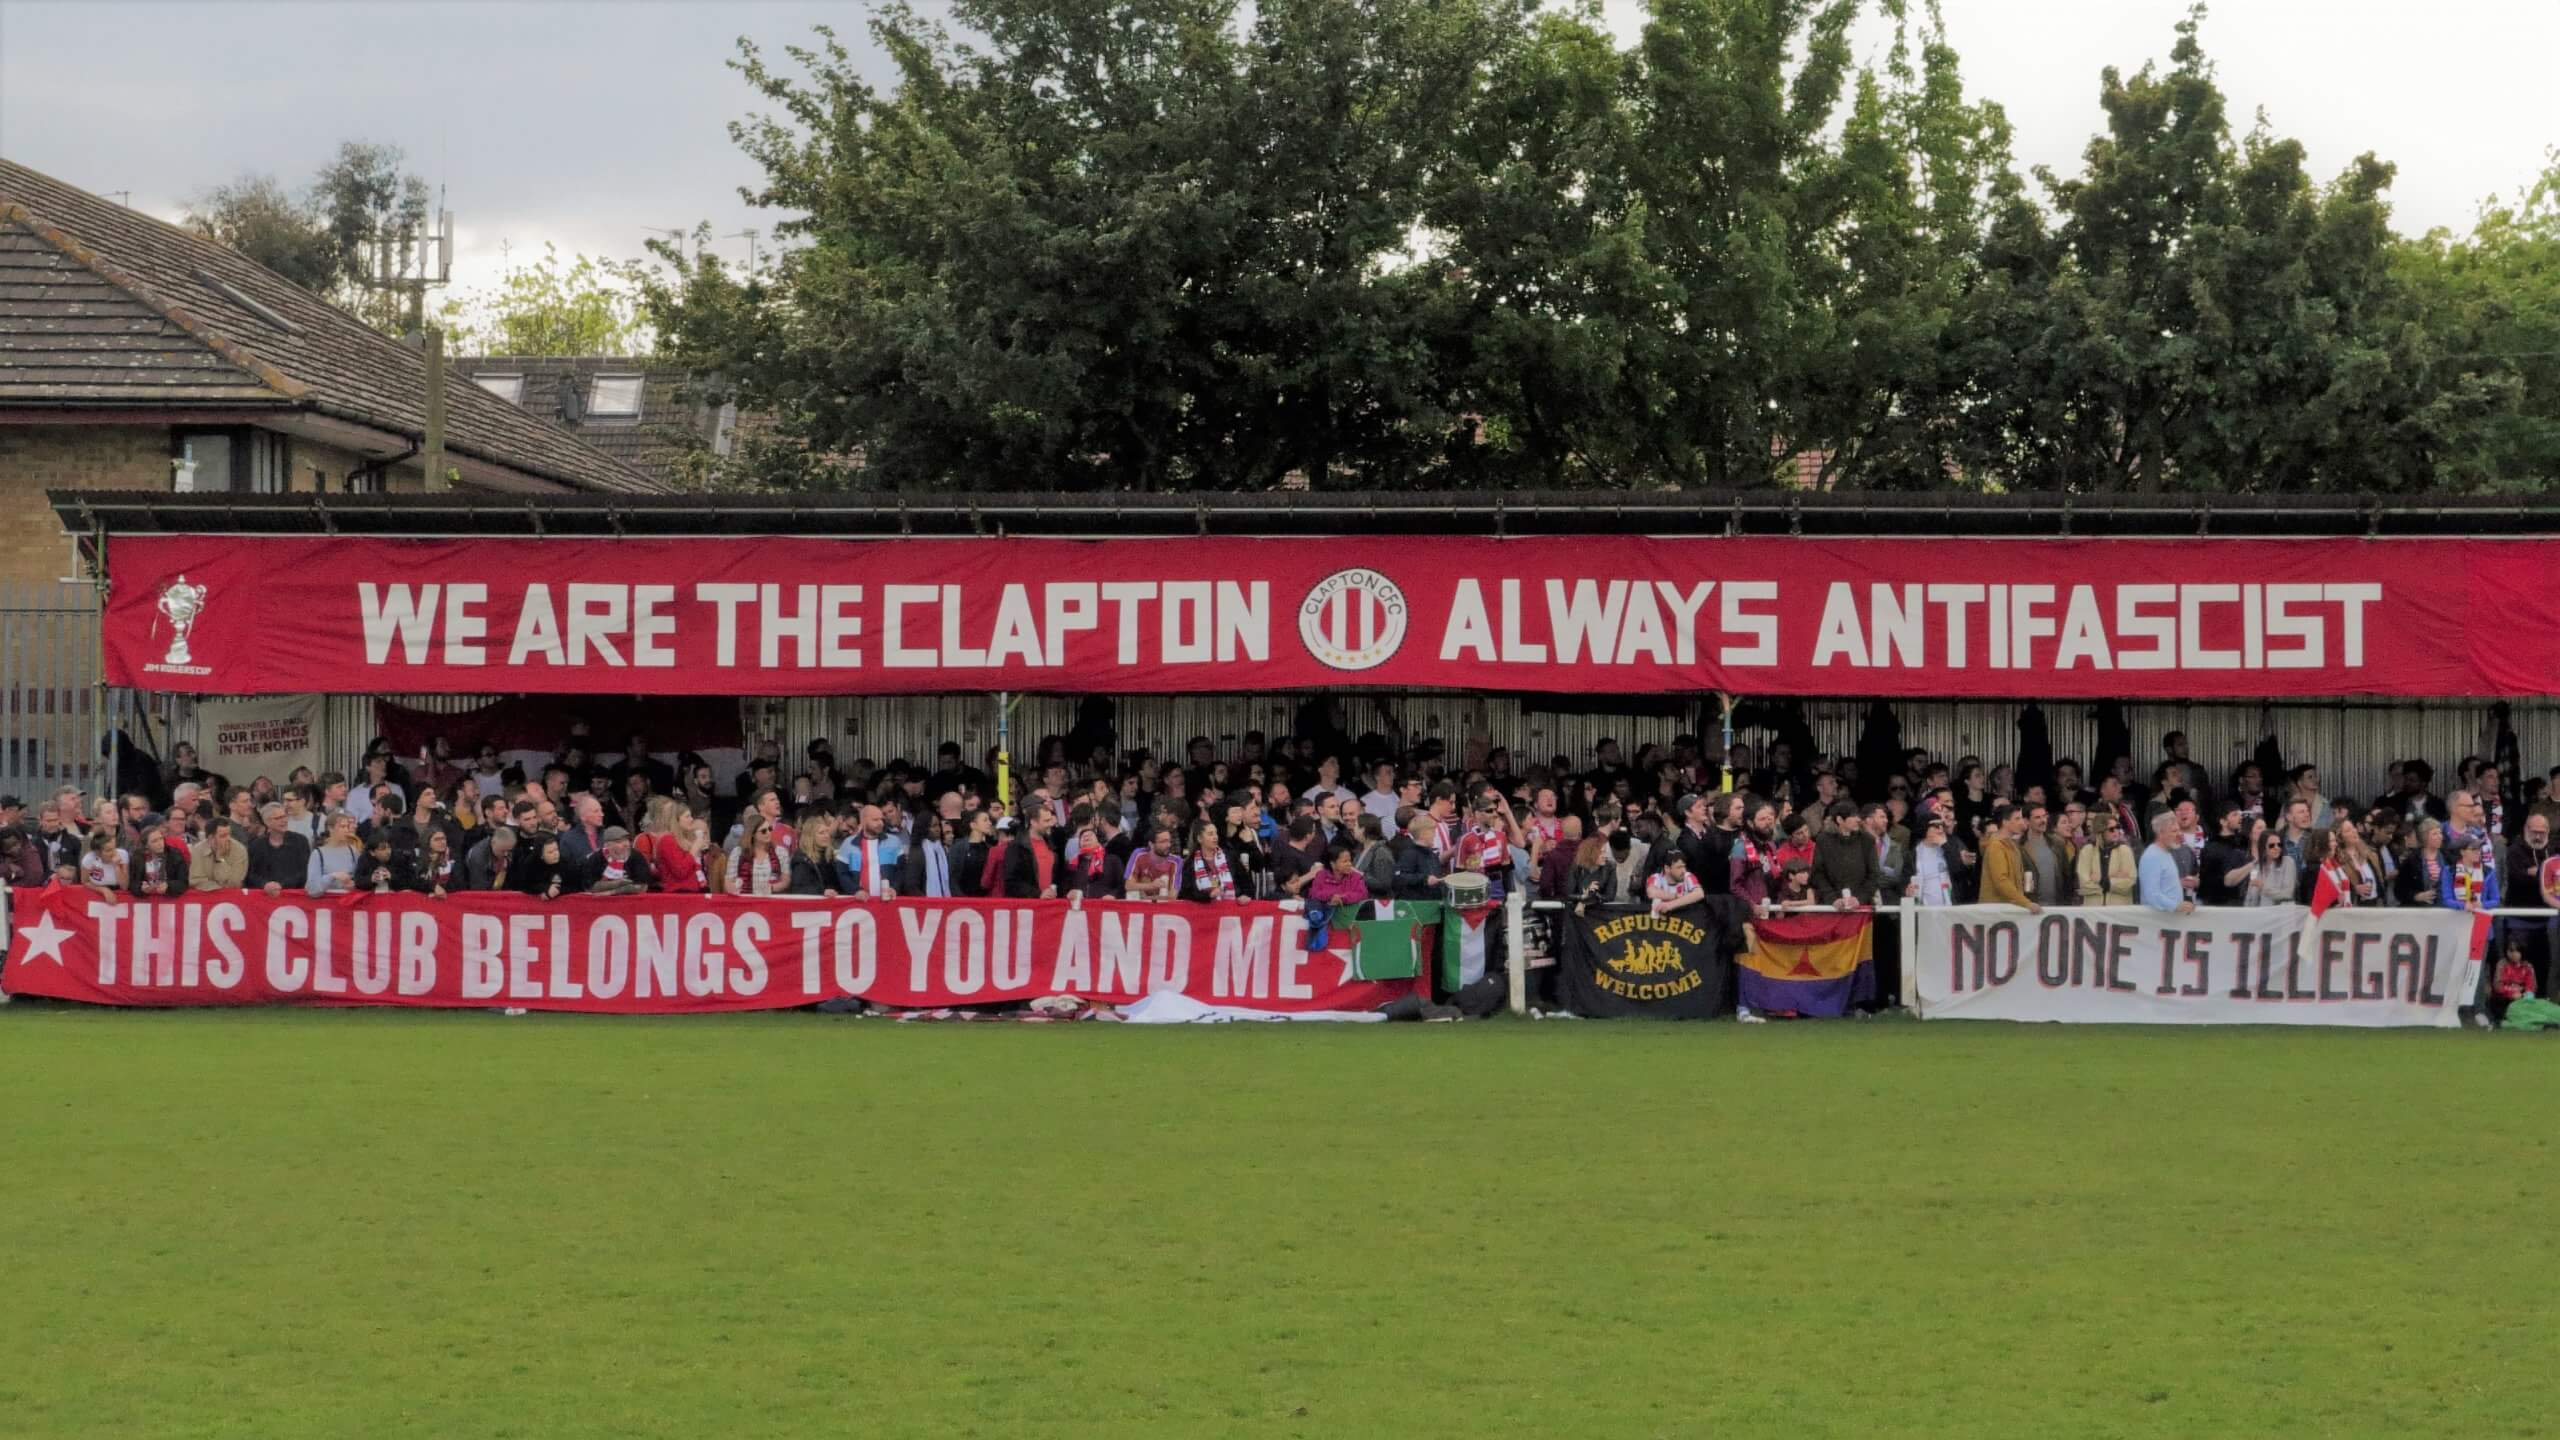 Stadium full of Clapton FC fans with anti-fascist banner